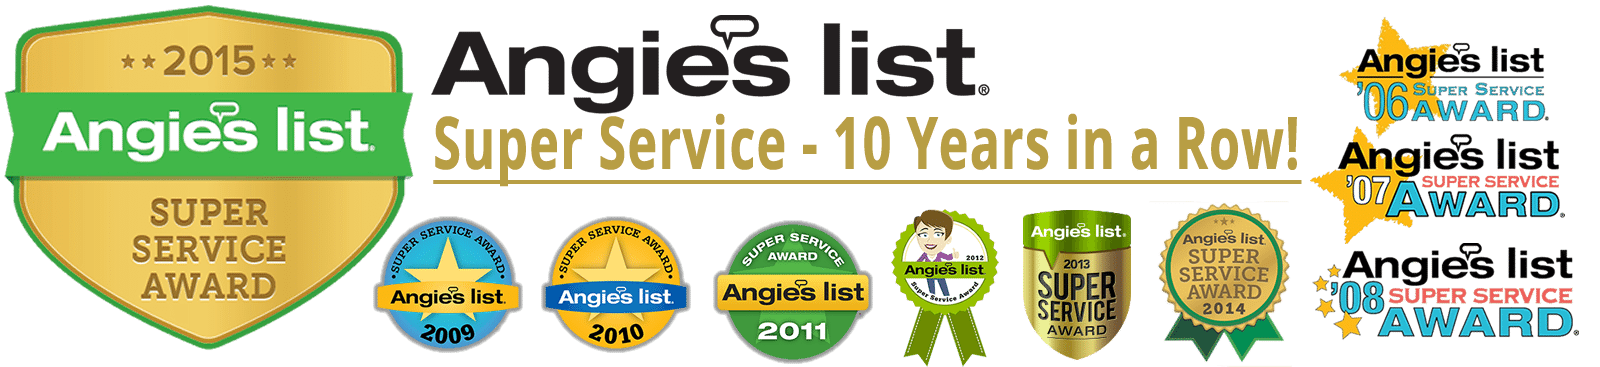 Angie's List Super Service Award Winner 10 Years in a Row